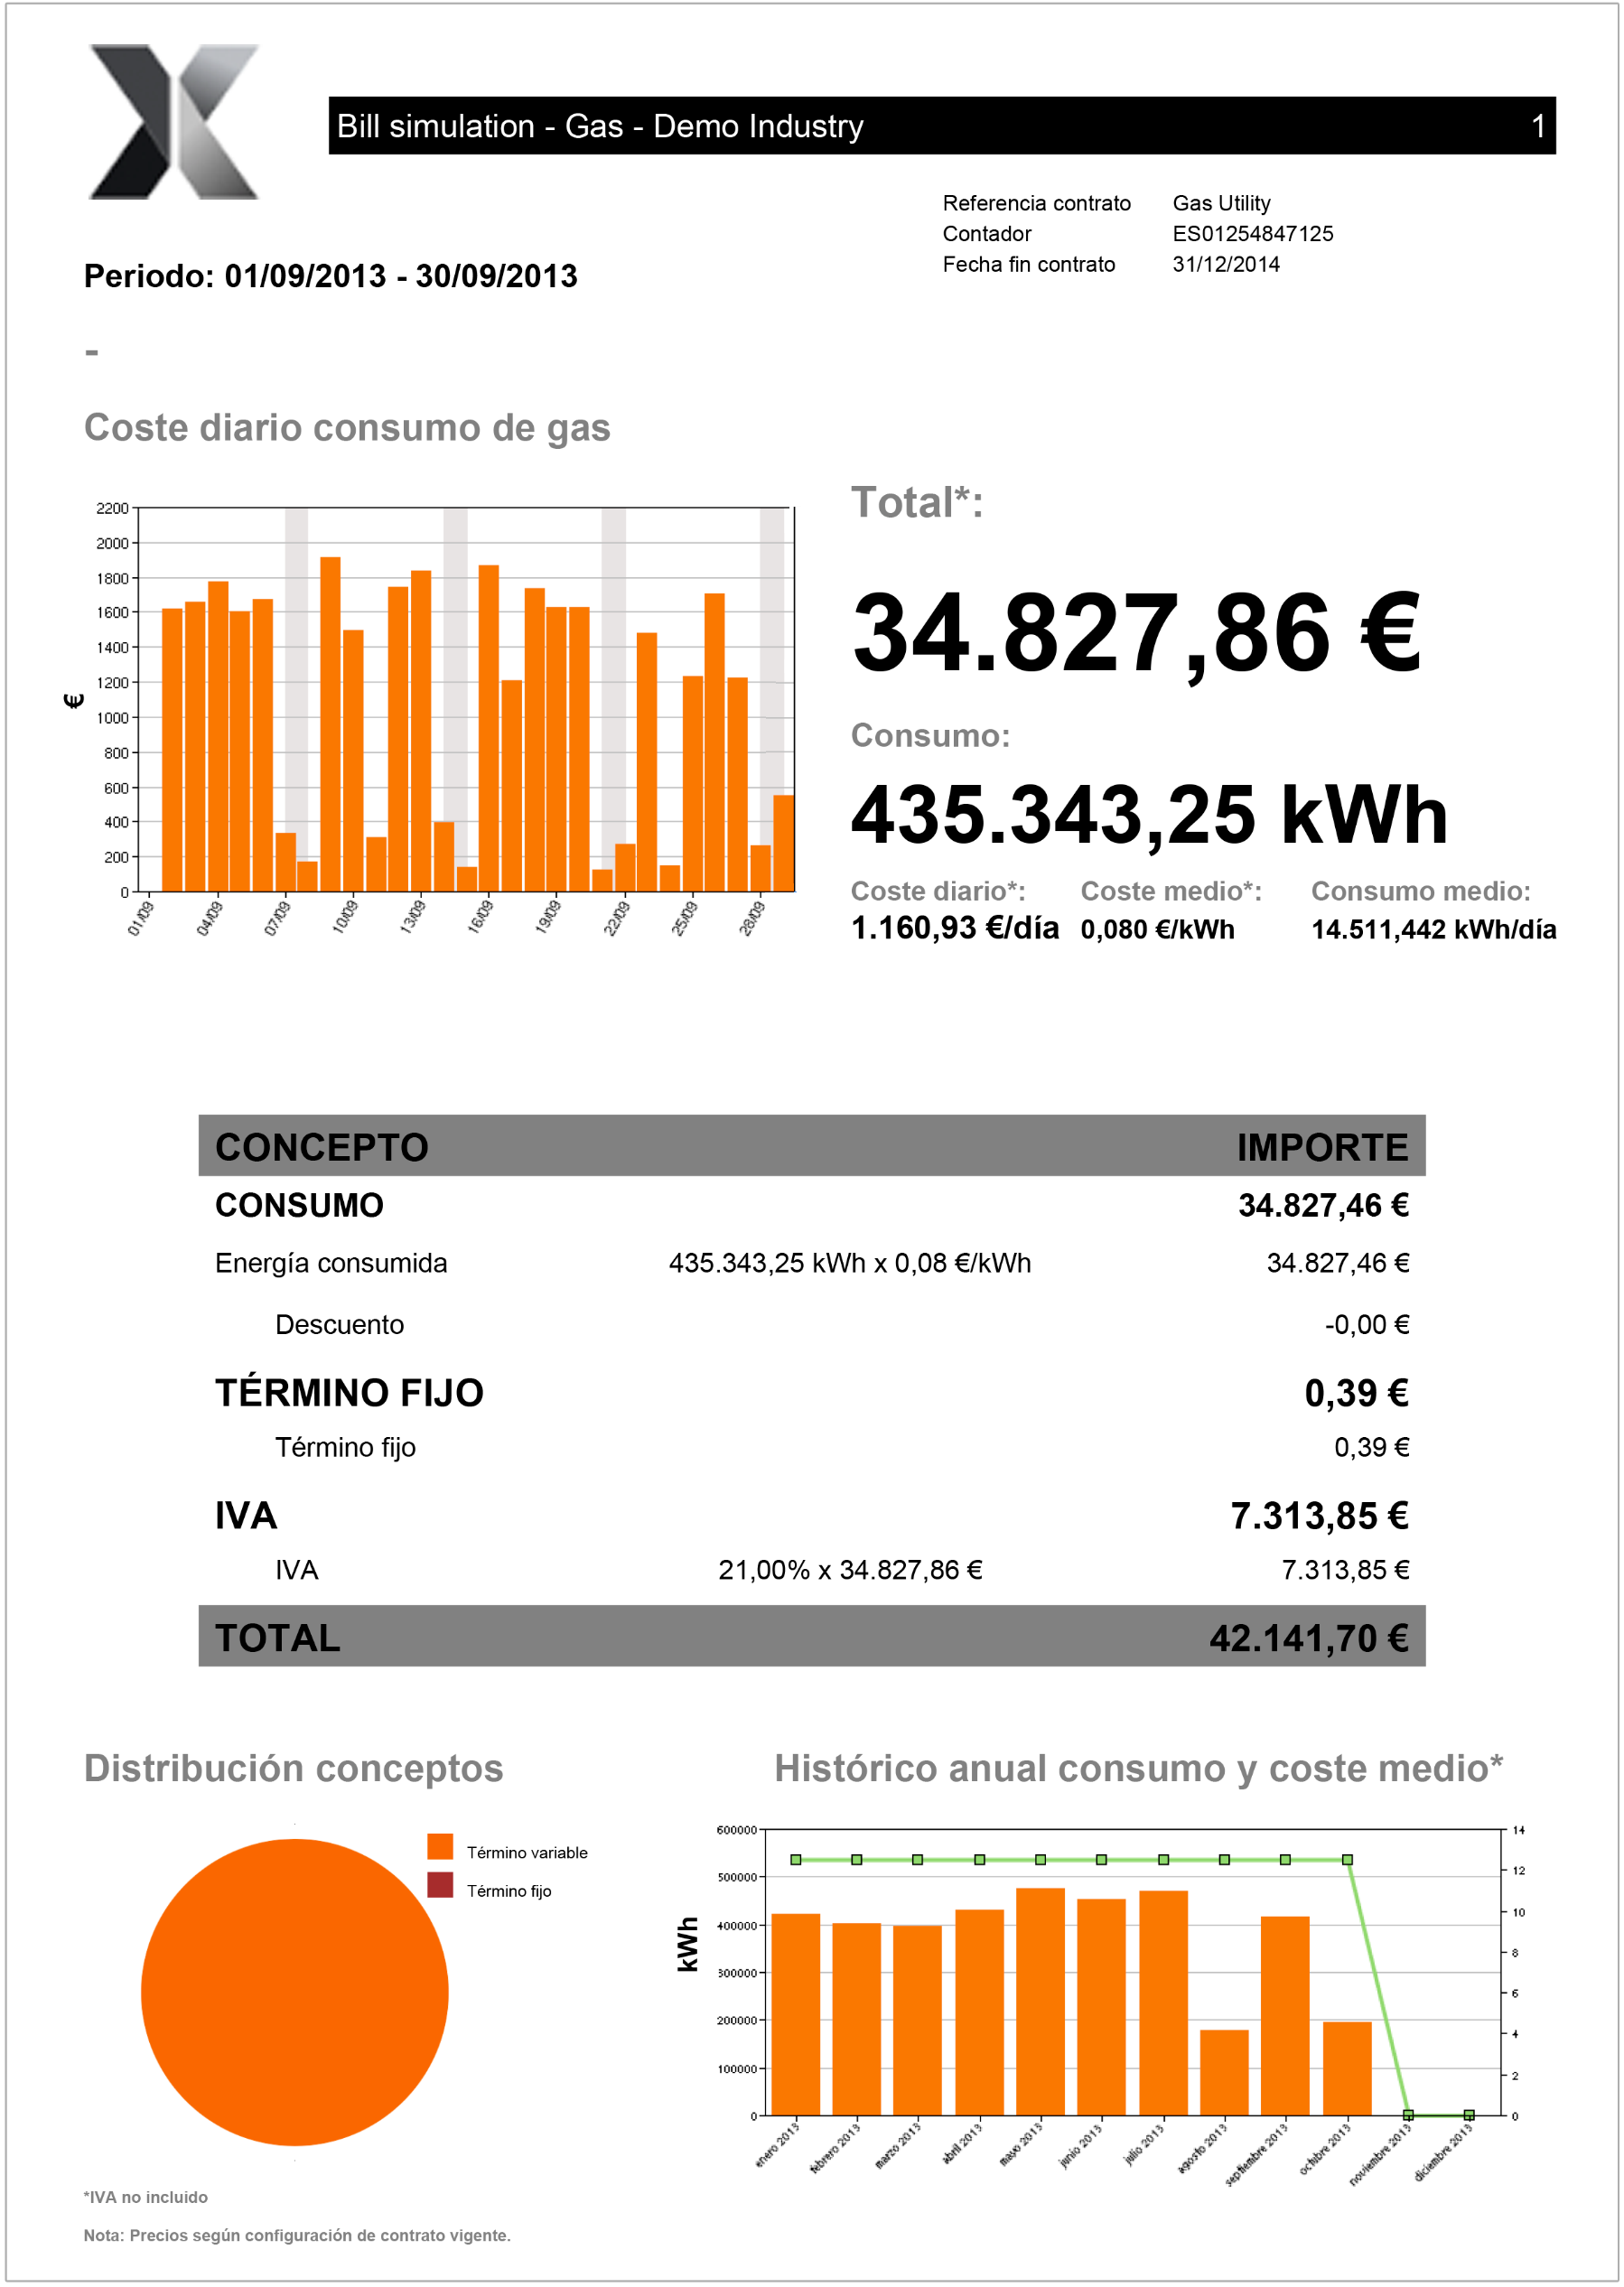 dexma-gas-bill-simulation-report-1.png